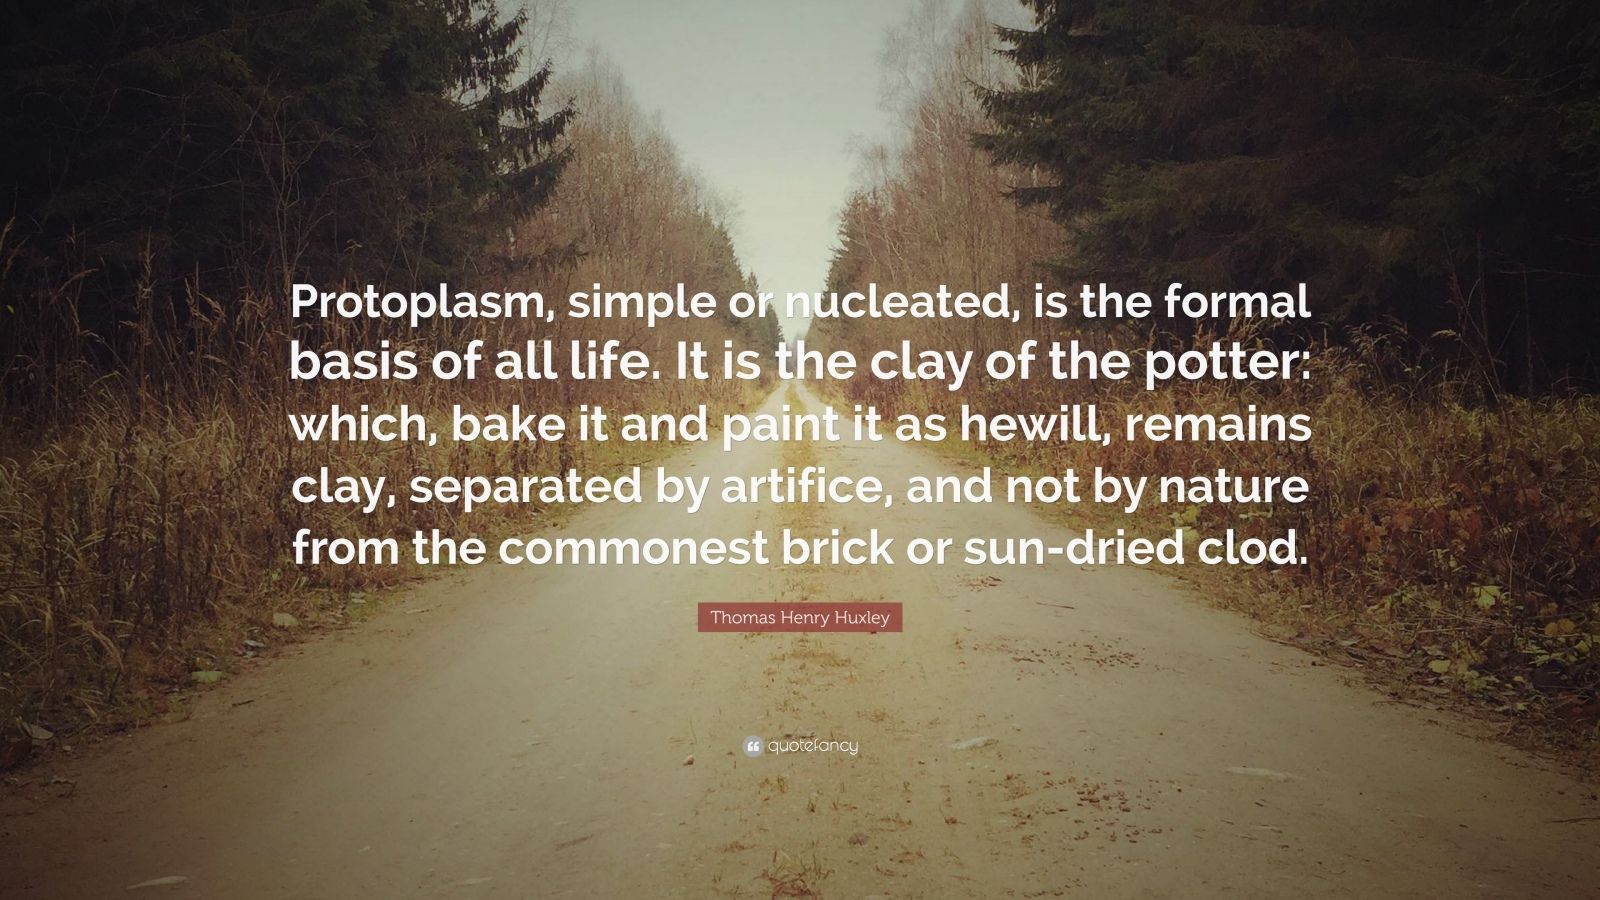 "Thomas Henry Huxley Quote: ""Protoplasm, simple or nucleated, is the formal basis of all life. It is the clay of the potter: which, bake it and paint it as hewill, remains clay, separated by artifice, and not by nature from the commonest brick or sun-dried clod."""